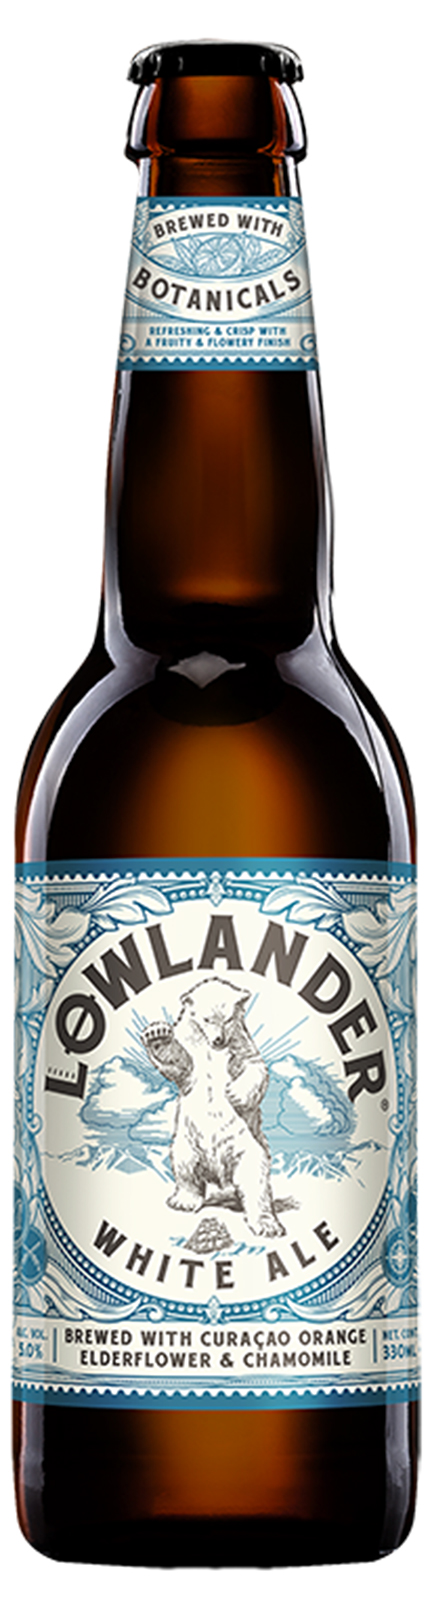 Lowlander_Visualisation_WhiteAle_72dpi large